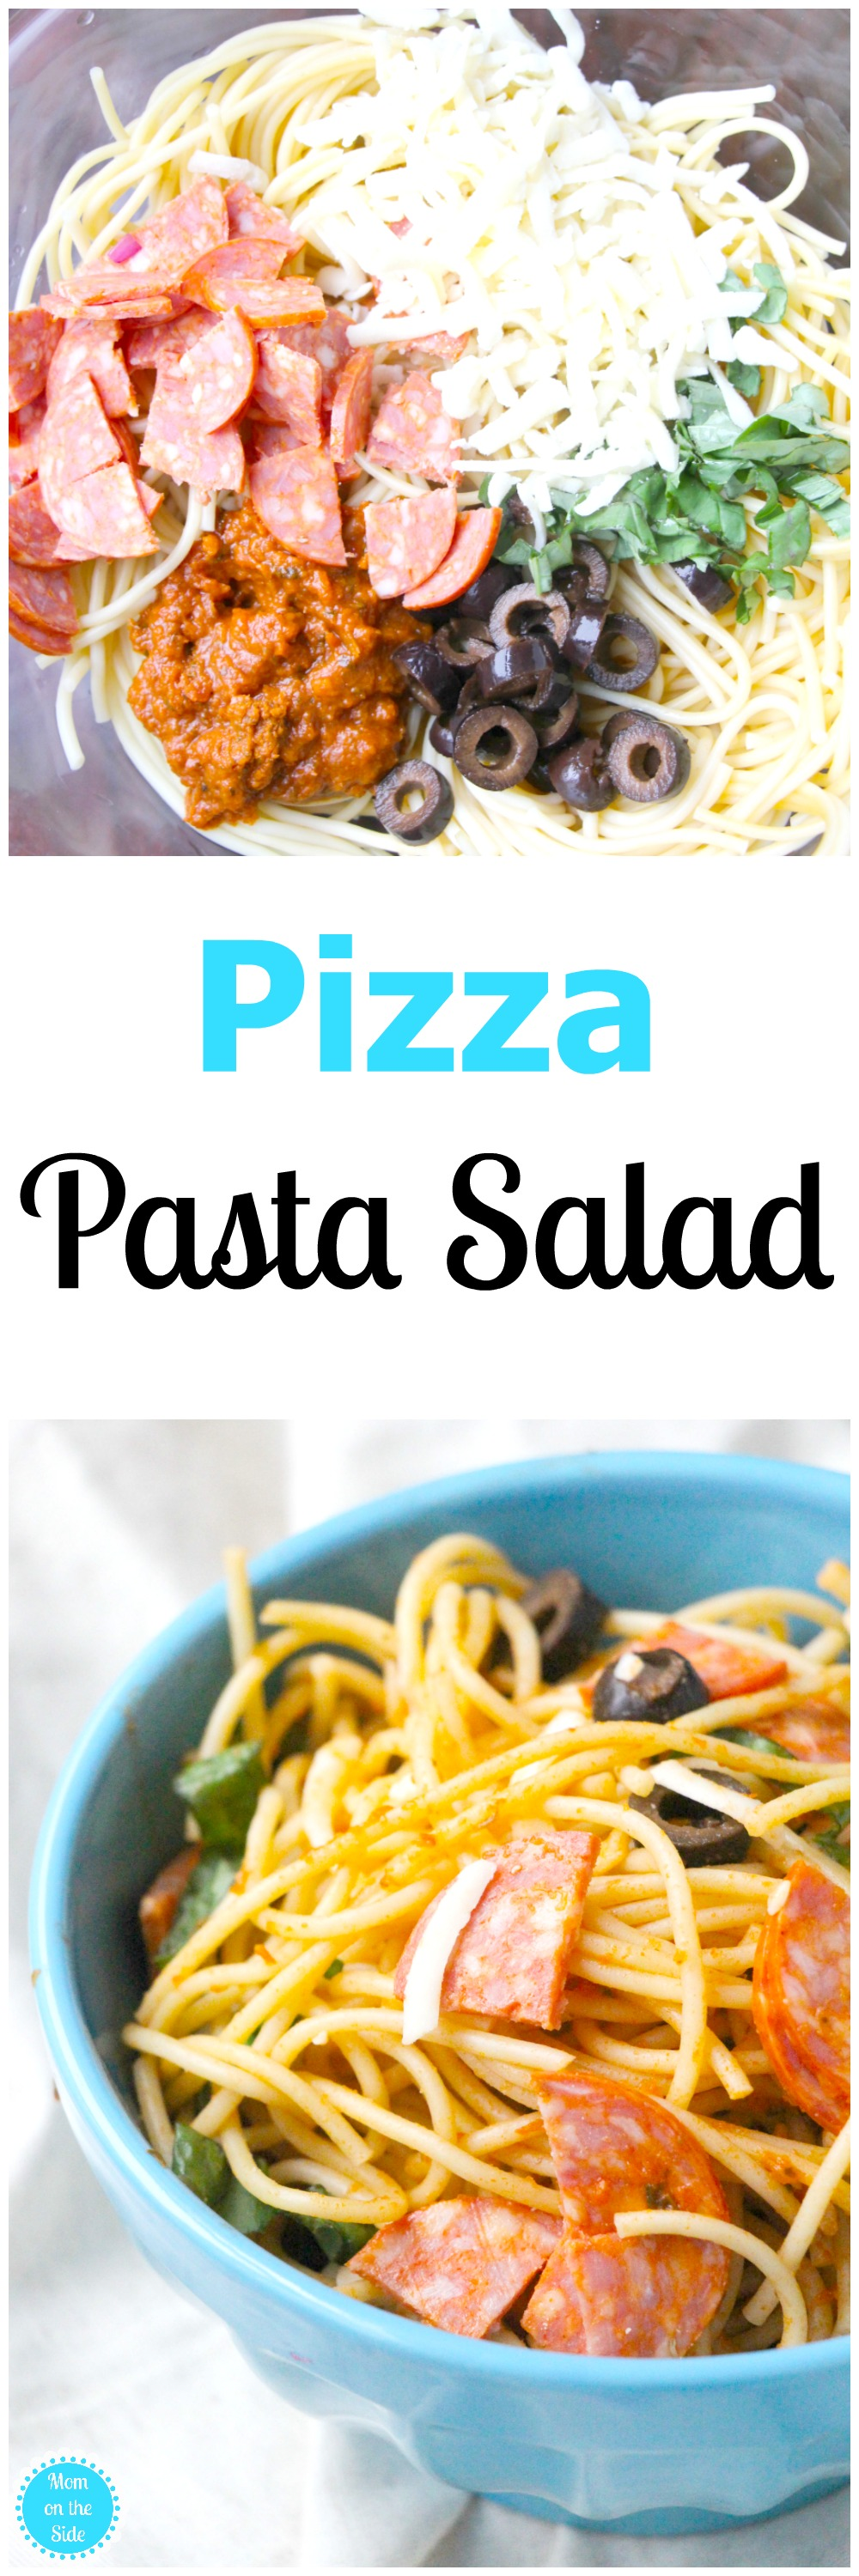 Serve this Pizza Pasta Salad cold or hot at your next picnic or bbq! Six simple ingredients for a deliciously easy pasta salad you'll want more of!